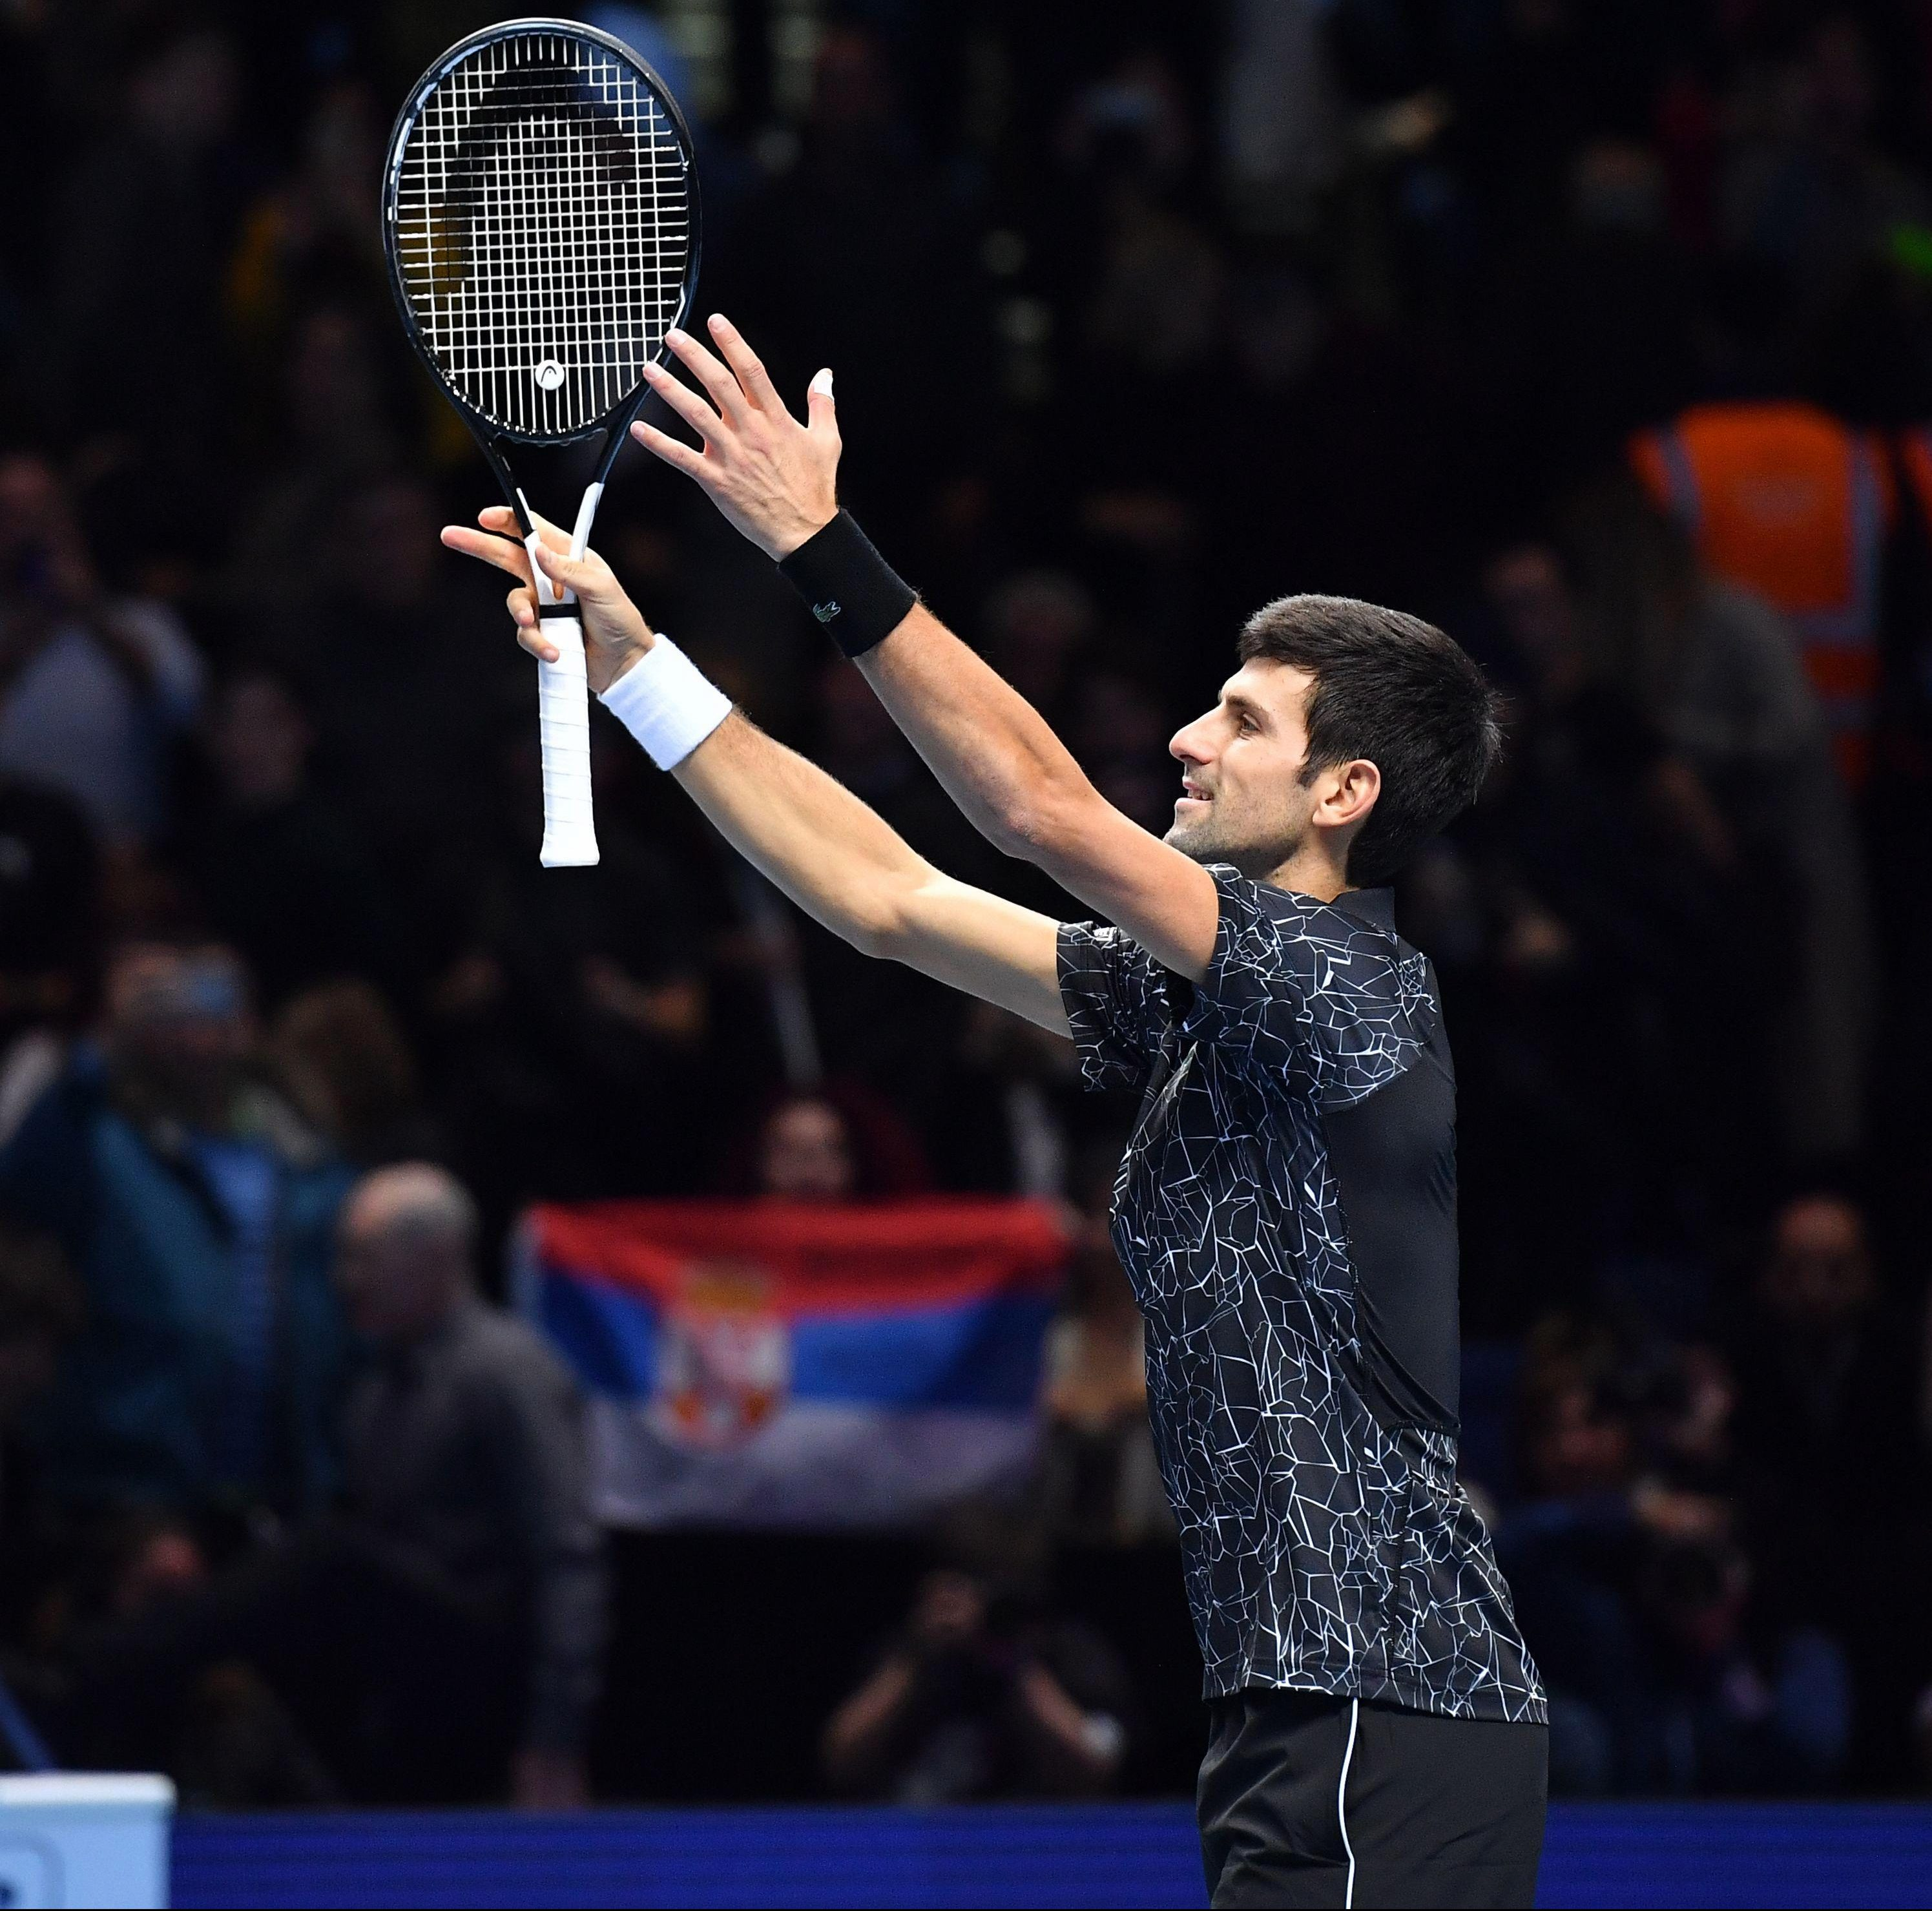 ATP Finals star Novak Djokovic threw his racket into the air